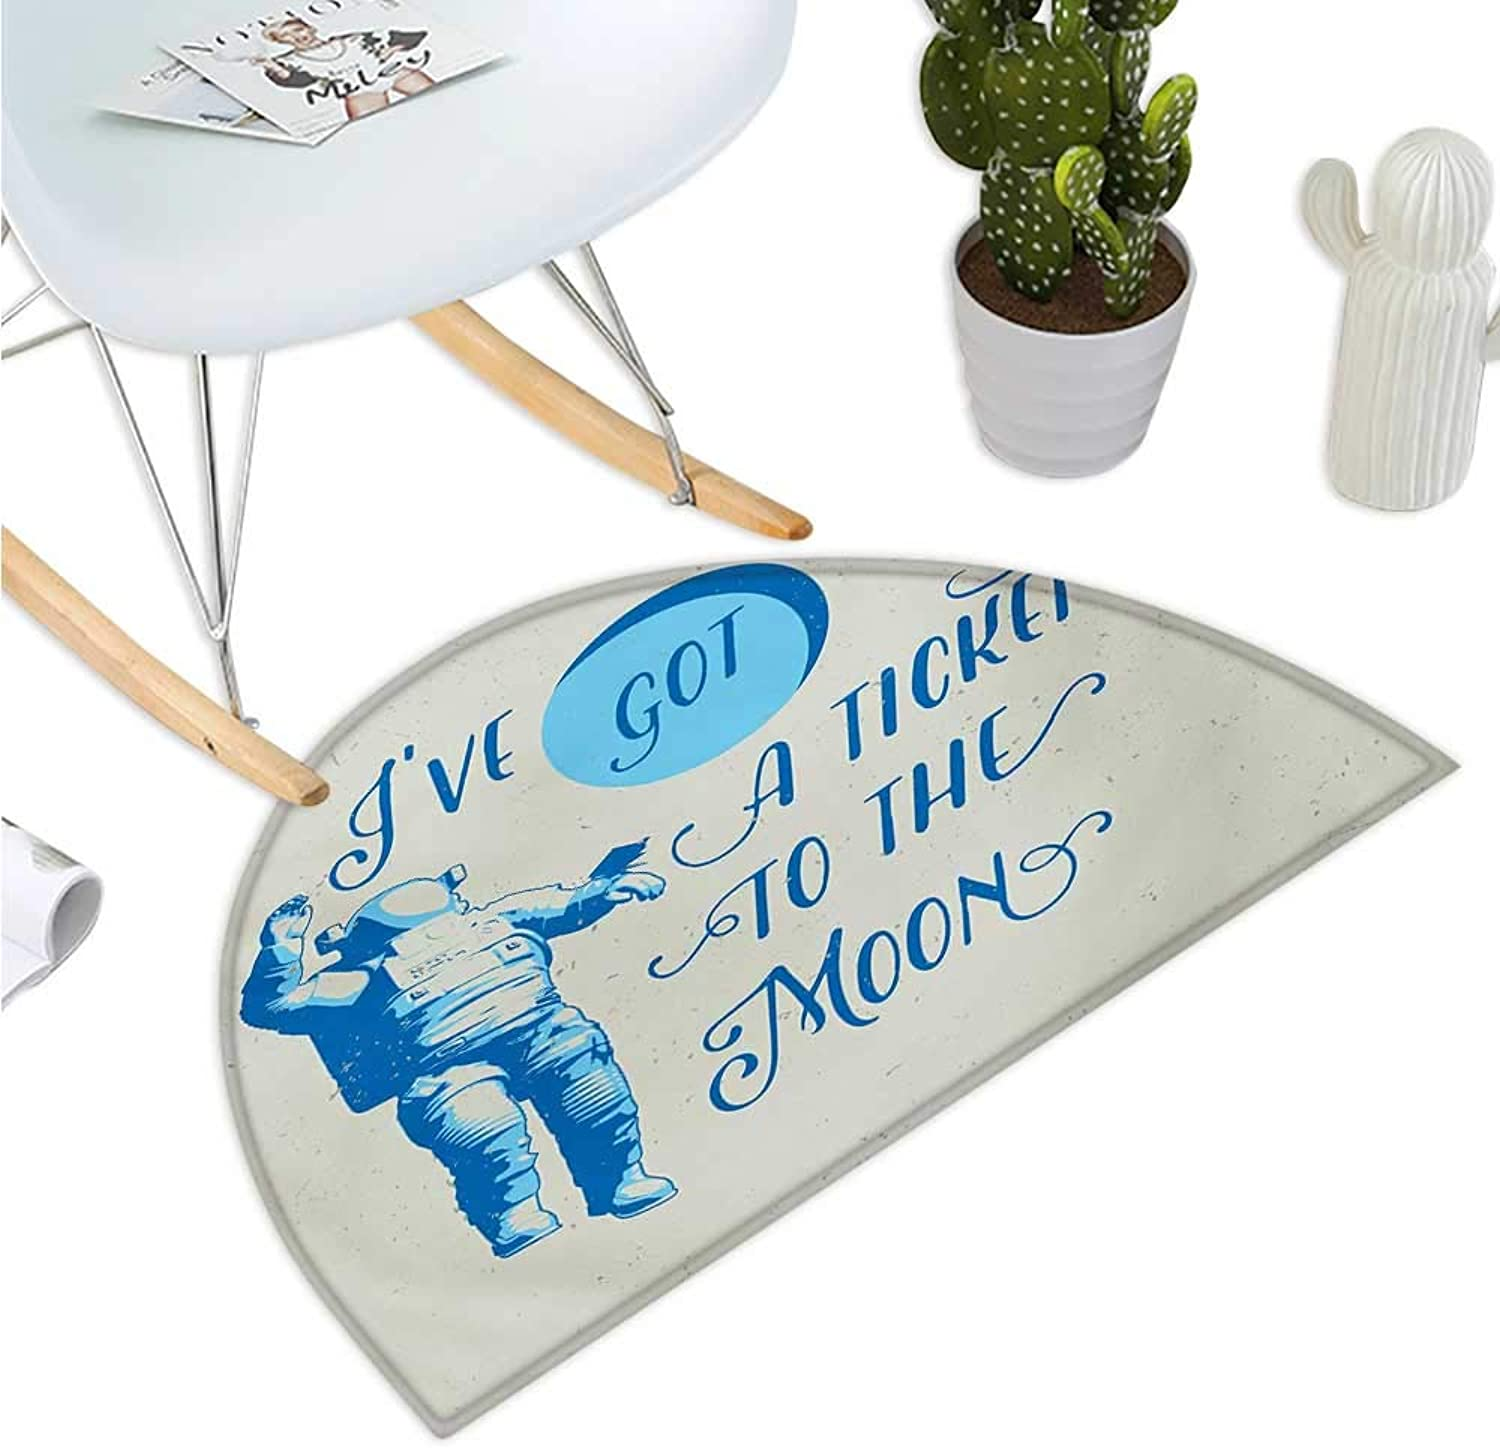 Astronaut Semicircular Cushion Ive Got a Ticket to The Moon Astronaut Galaxy Celestial Journey into Space Entry Door Mat H 39.3  xD 59  Pale bluee White